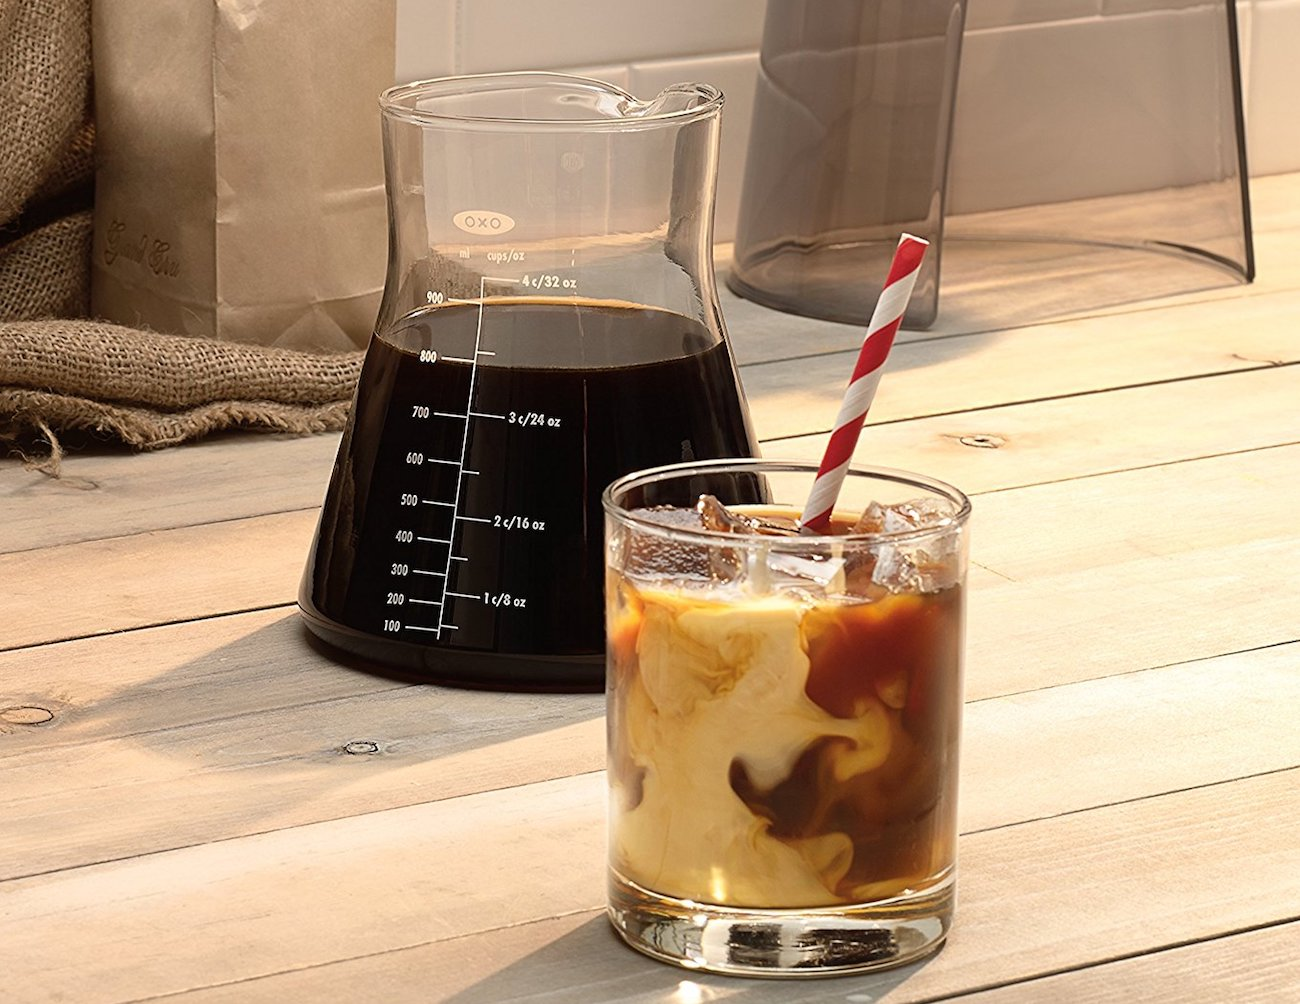 OXO Good Grips Cold Brew Coffee Maker makes 4 cups of delicious cold brew loading=